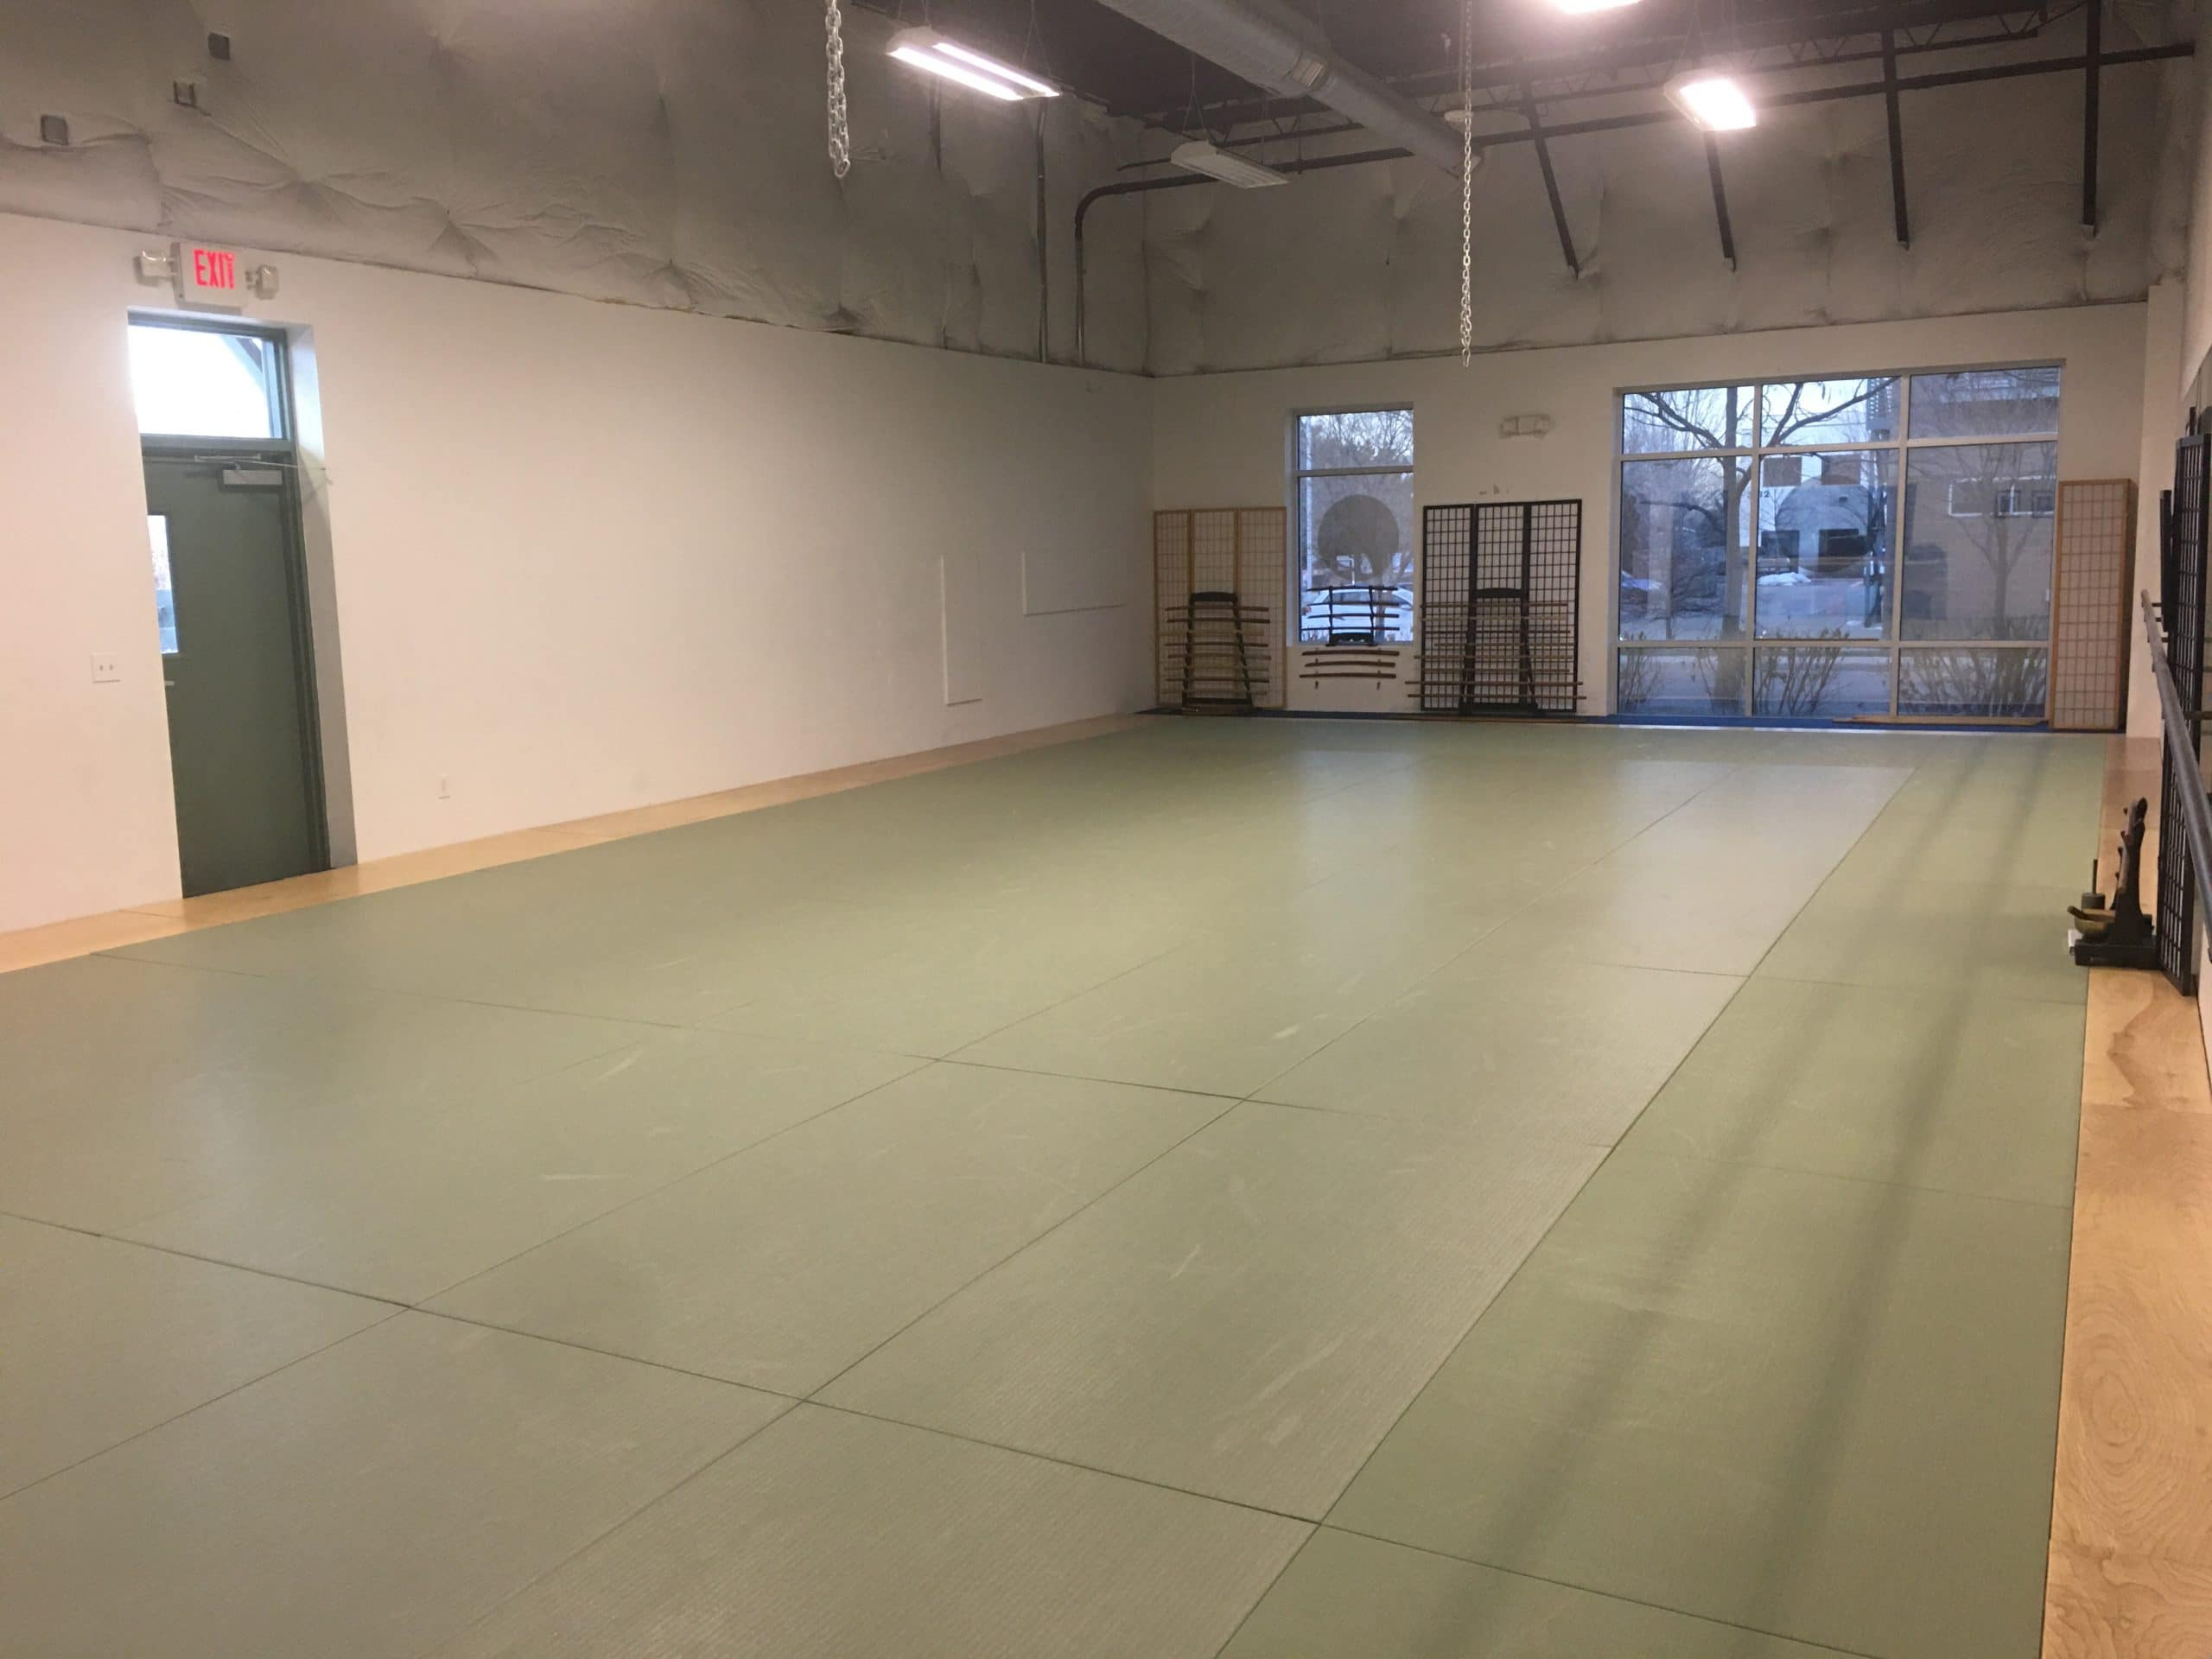 Boulder Studio Rental-Dojo Space for Rent by the Hour 2